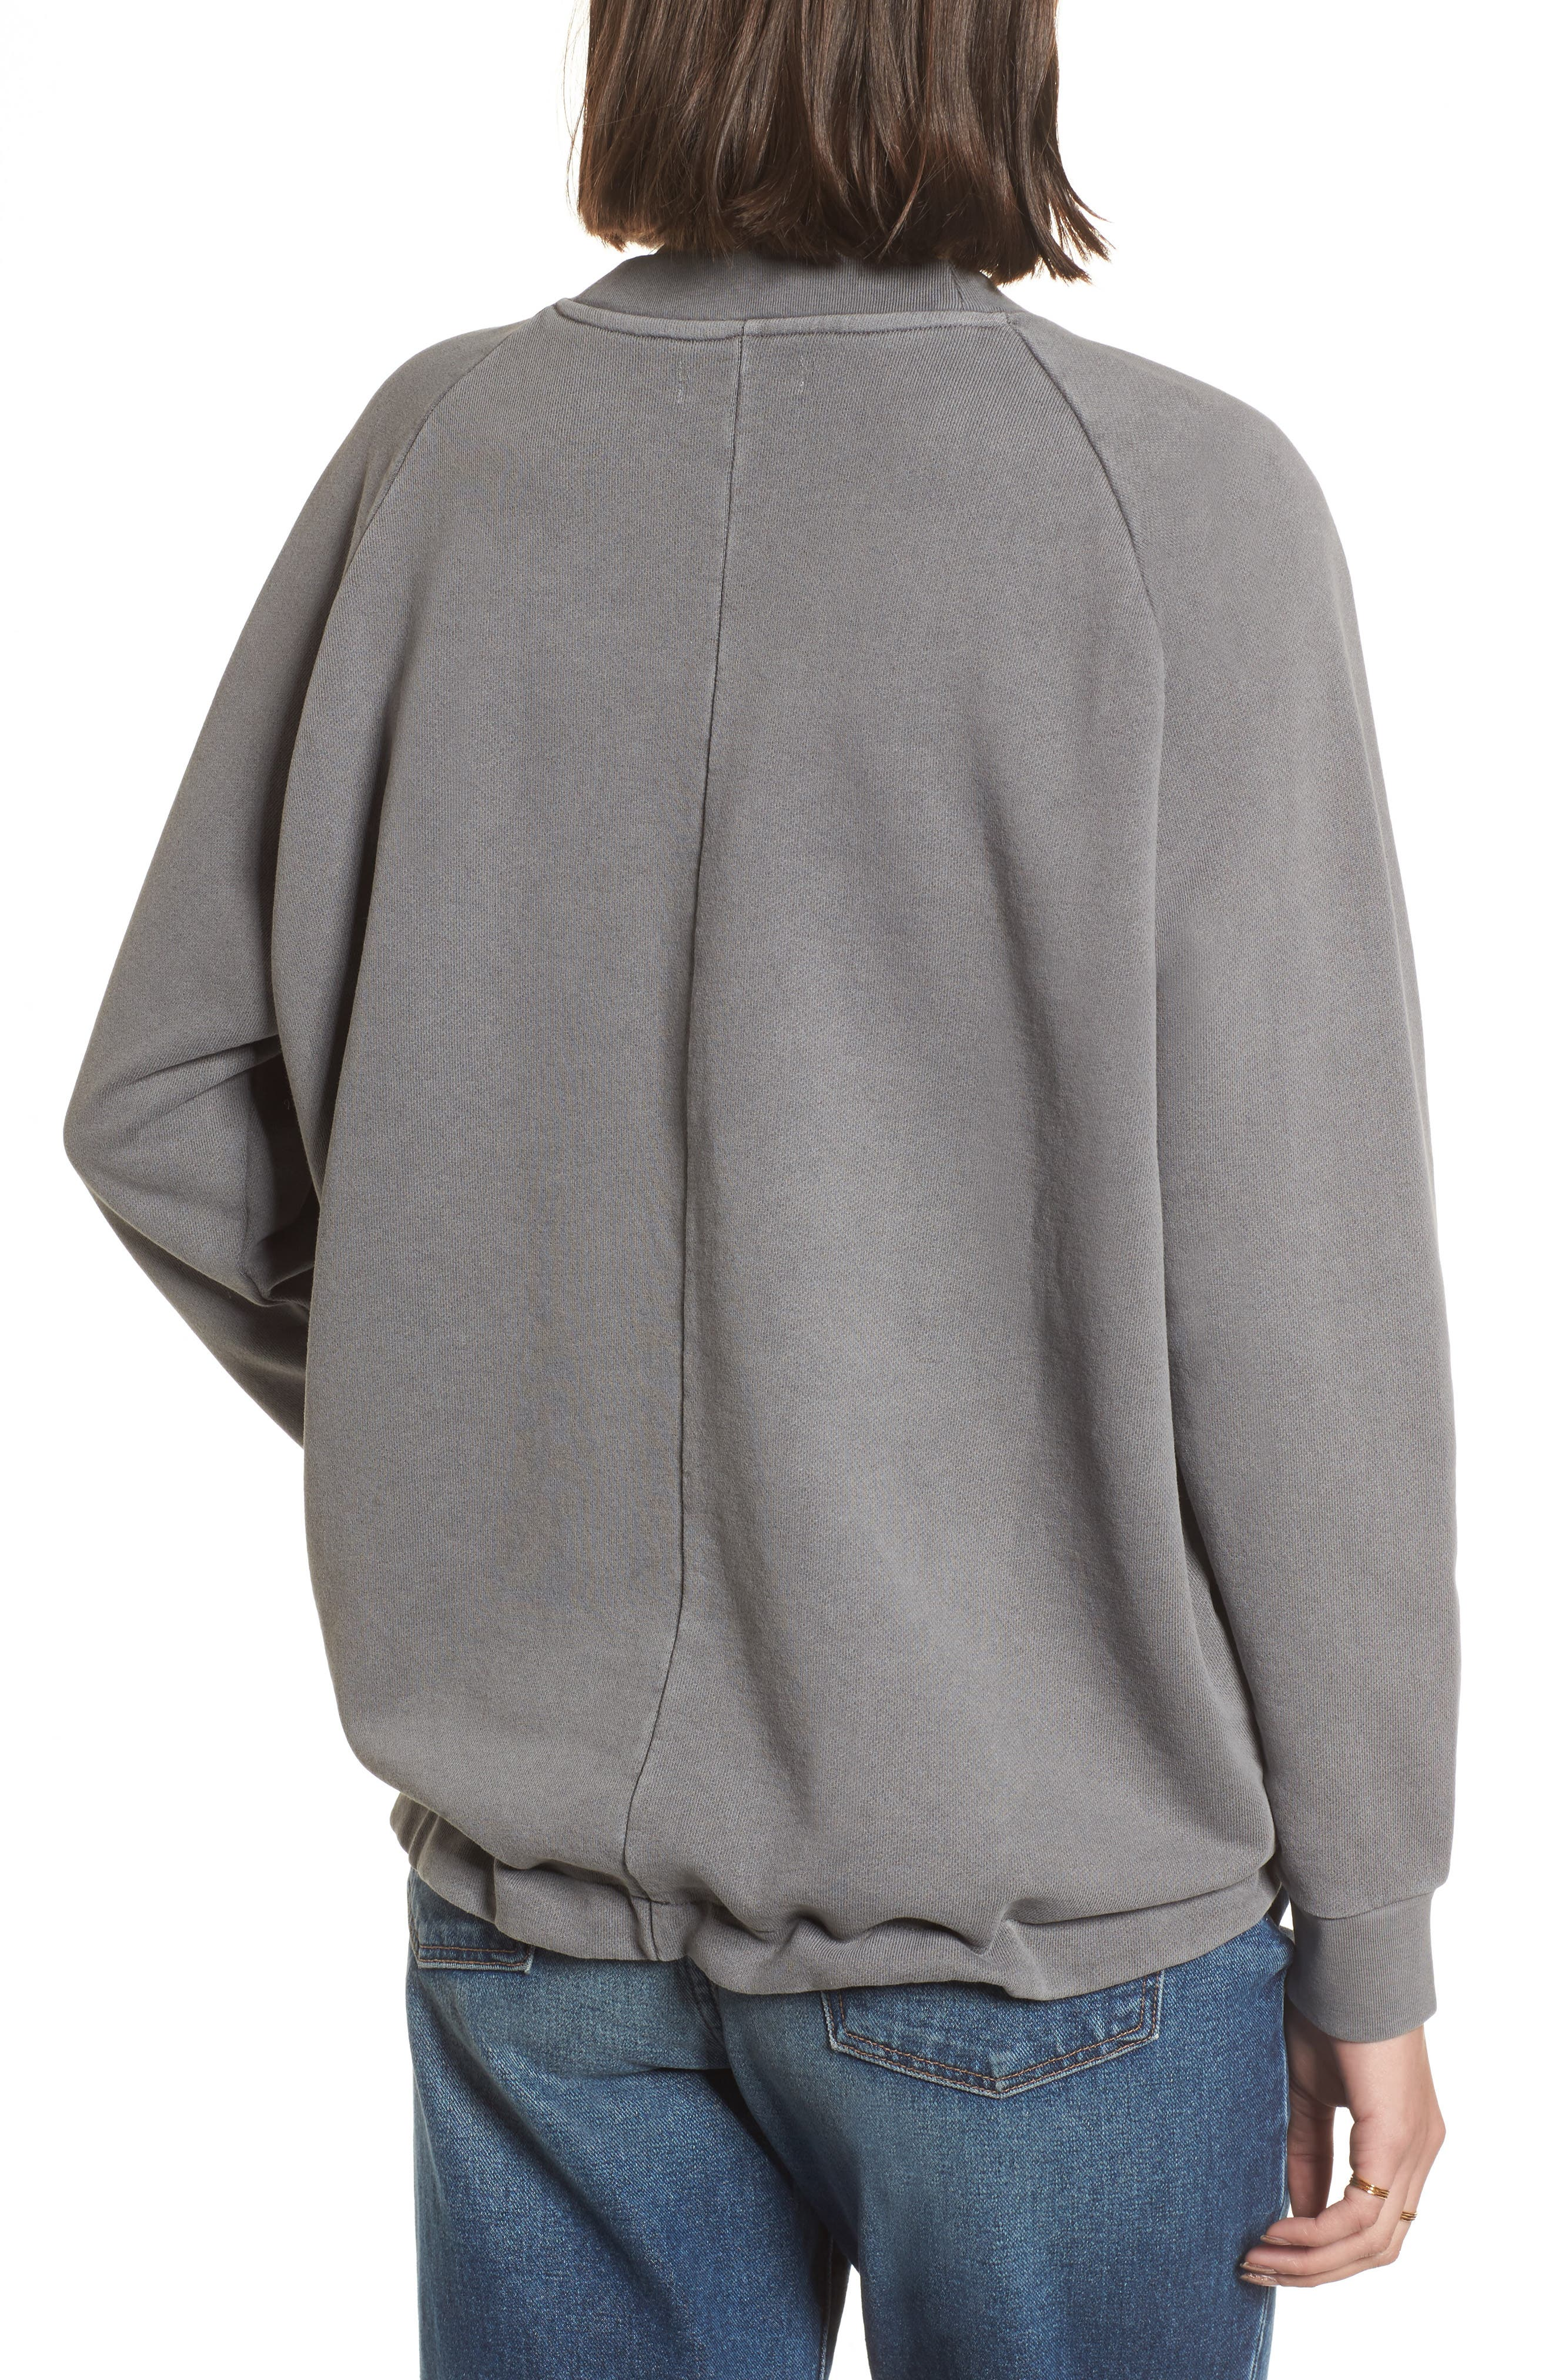 Drawstring Sweatshirt,                             Alternate thumbnail 3, color,